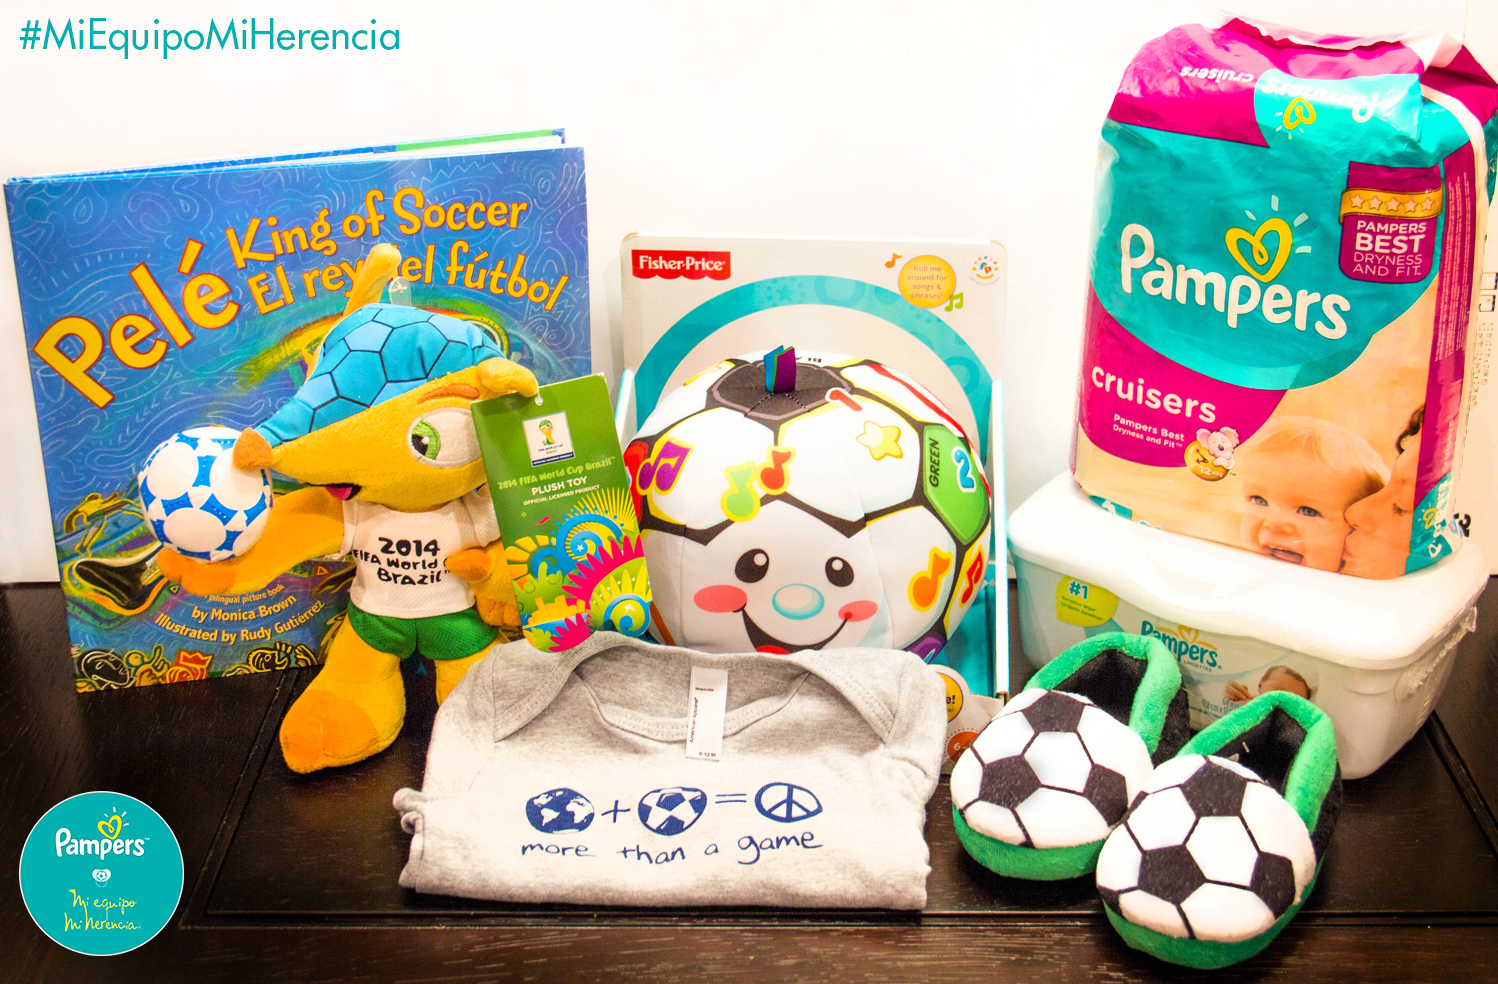 Pampers Mi Equipo, Mi Herencia Giveaway and Sweetpstakes